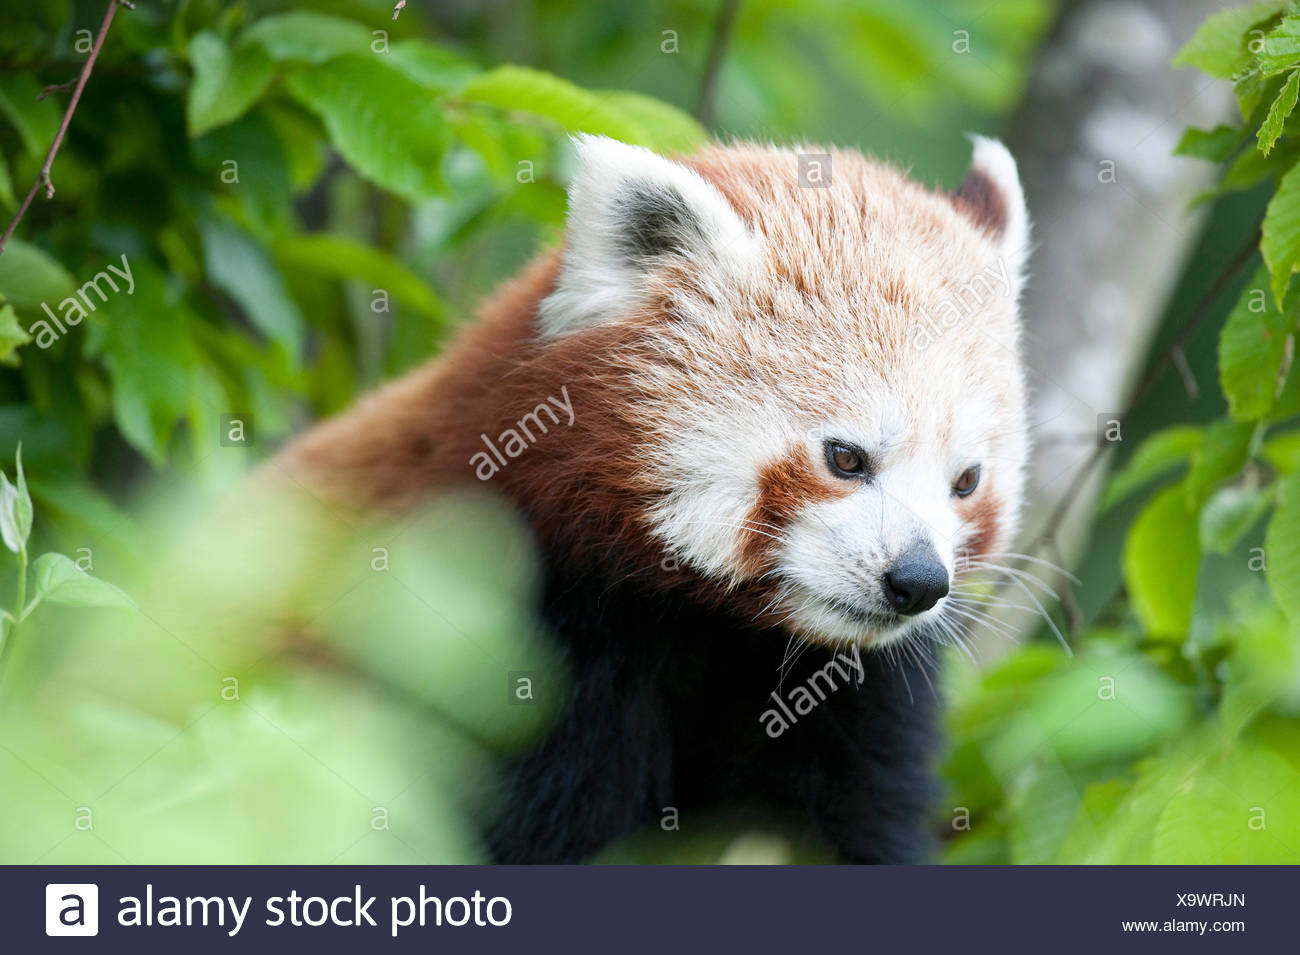 Red Panda, Ailurus fulgens, Captive, China, lesser panda and red cat-bear, is a small arboreal mammal native to the eastern Himalayas and southwestern - Stock Image